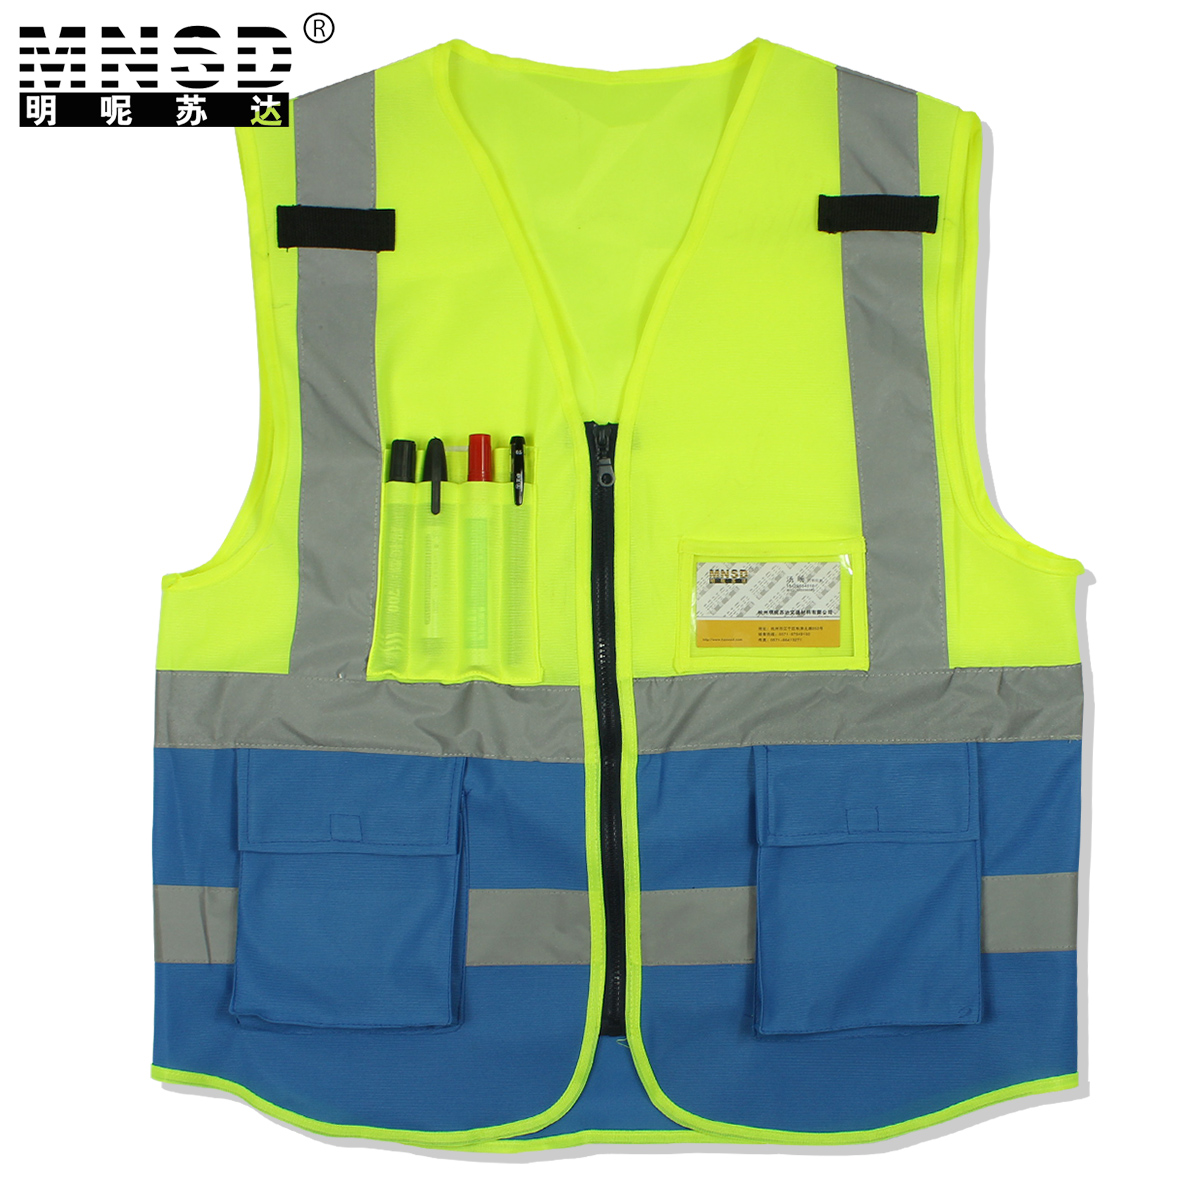 mnsd blue yellow reflective vest safety vest protective clothing chaleco reflectante gilet jaune. Black Bedroom Furniture Sets. Home Design Ideas